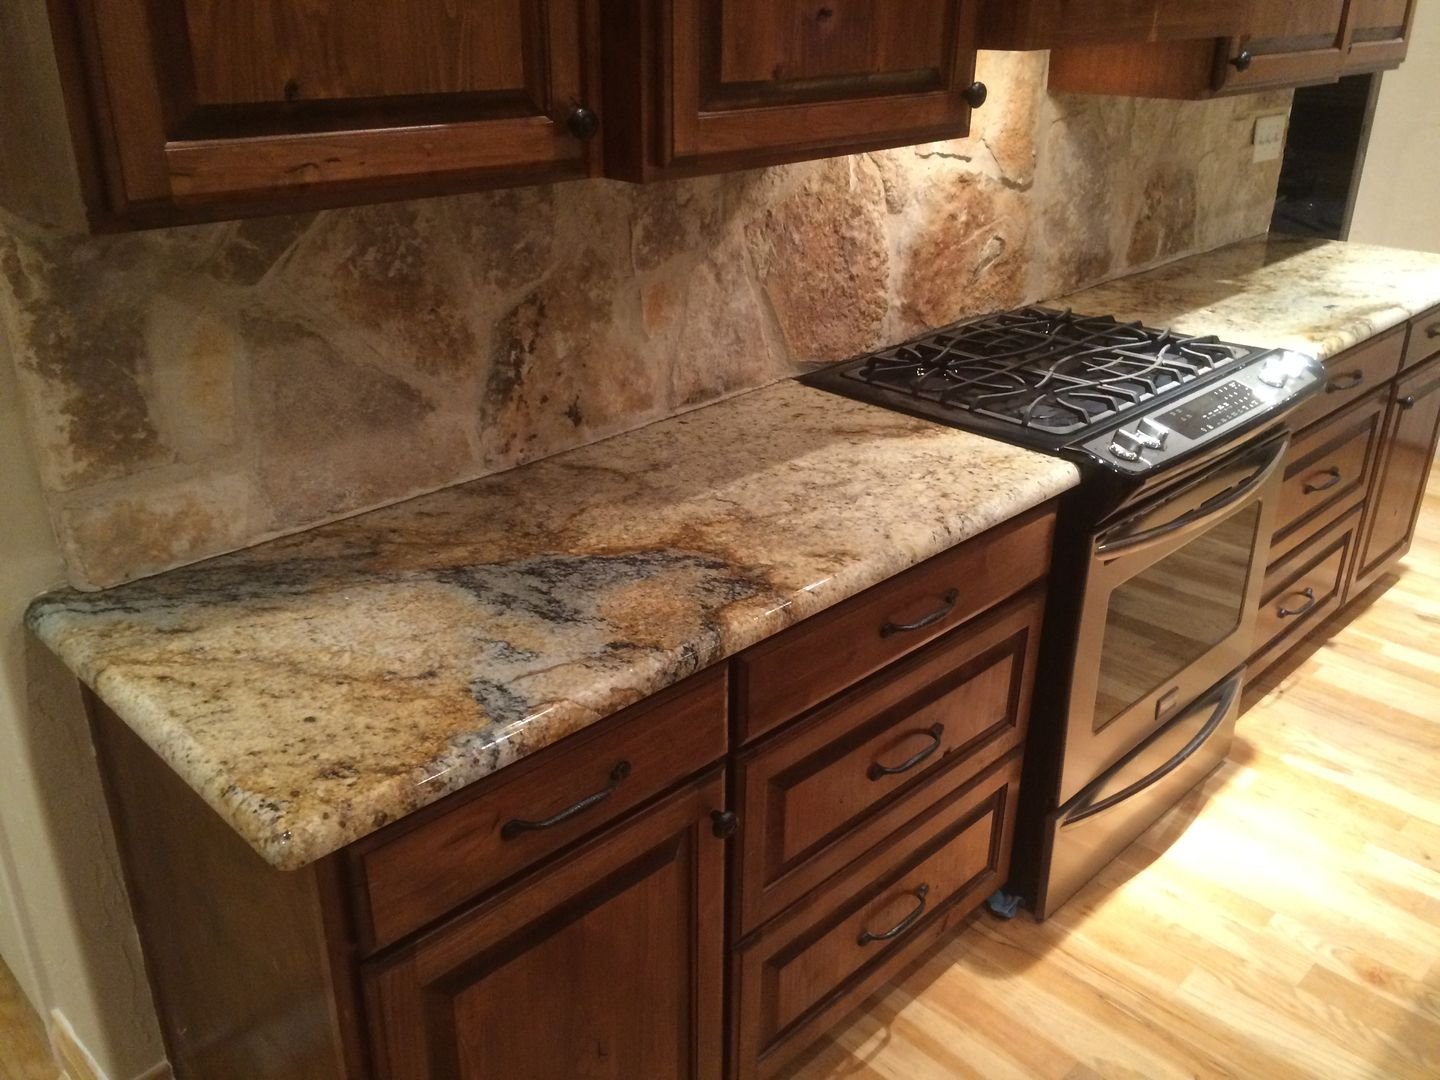 Sienna Beige Granite Kitchen Countertops Rock Backsplash Rustic Home Remodel Dark